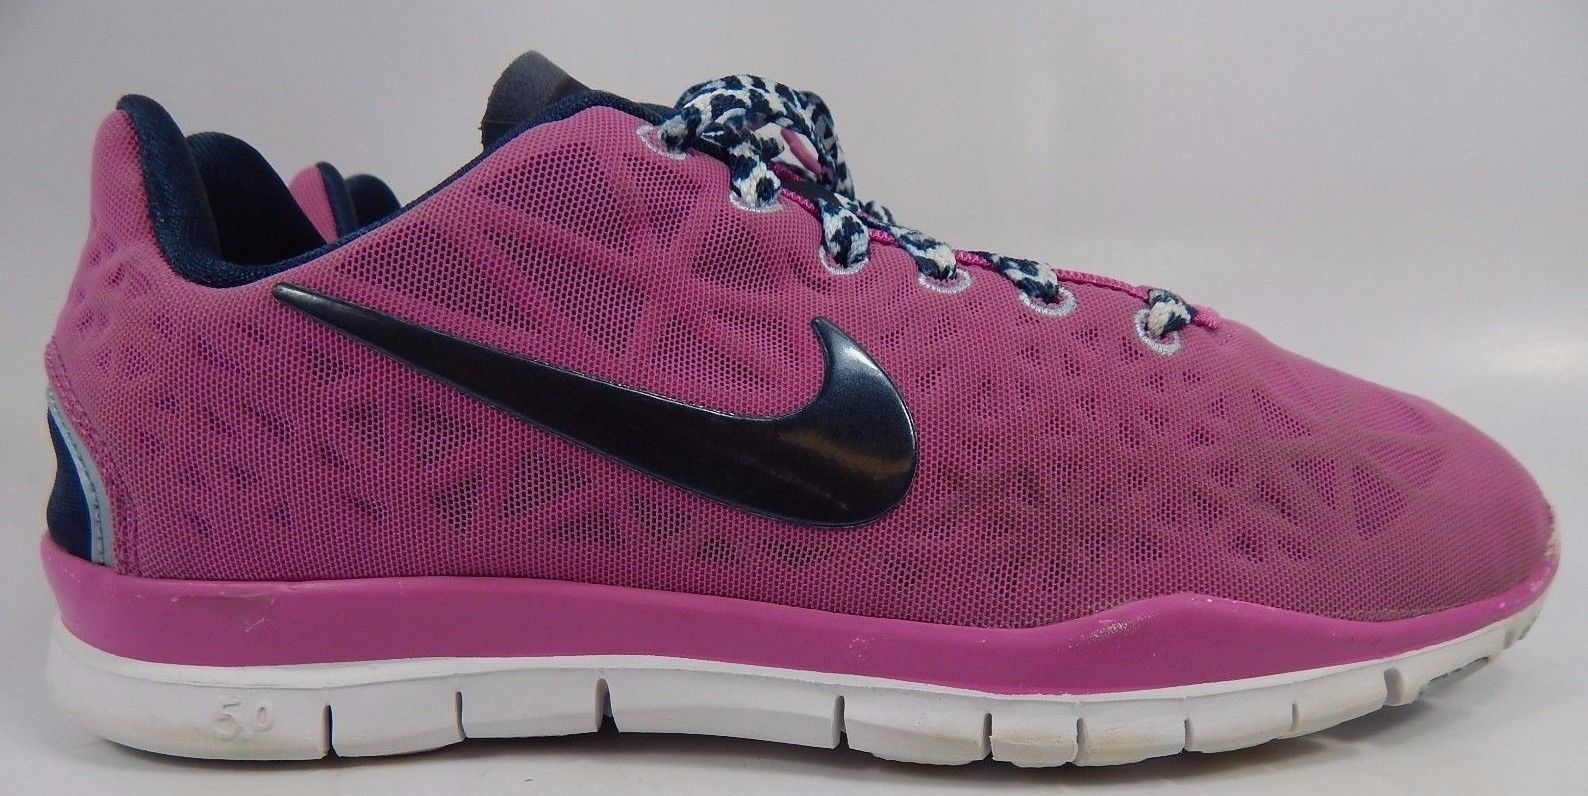 Nike Free 5.0 TR Fit 3 Women's Running Shoes Size US 6 M (B) EU 36.5 555158-602